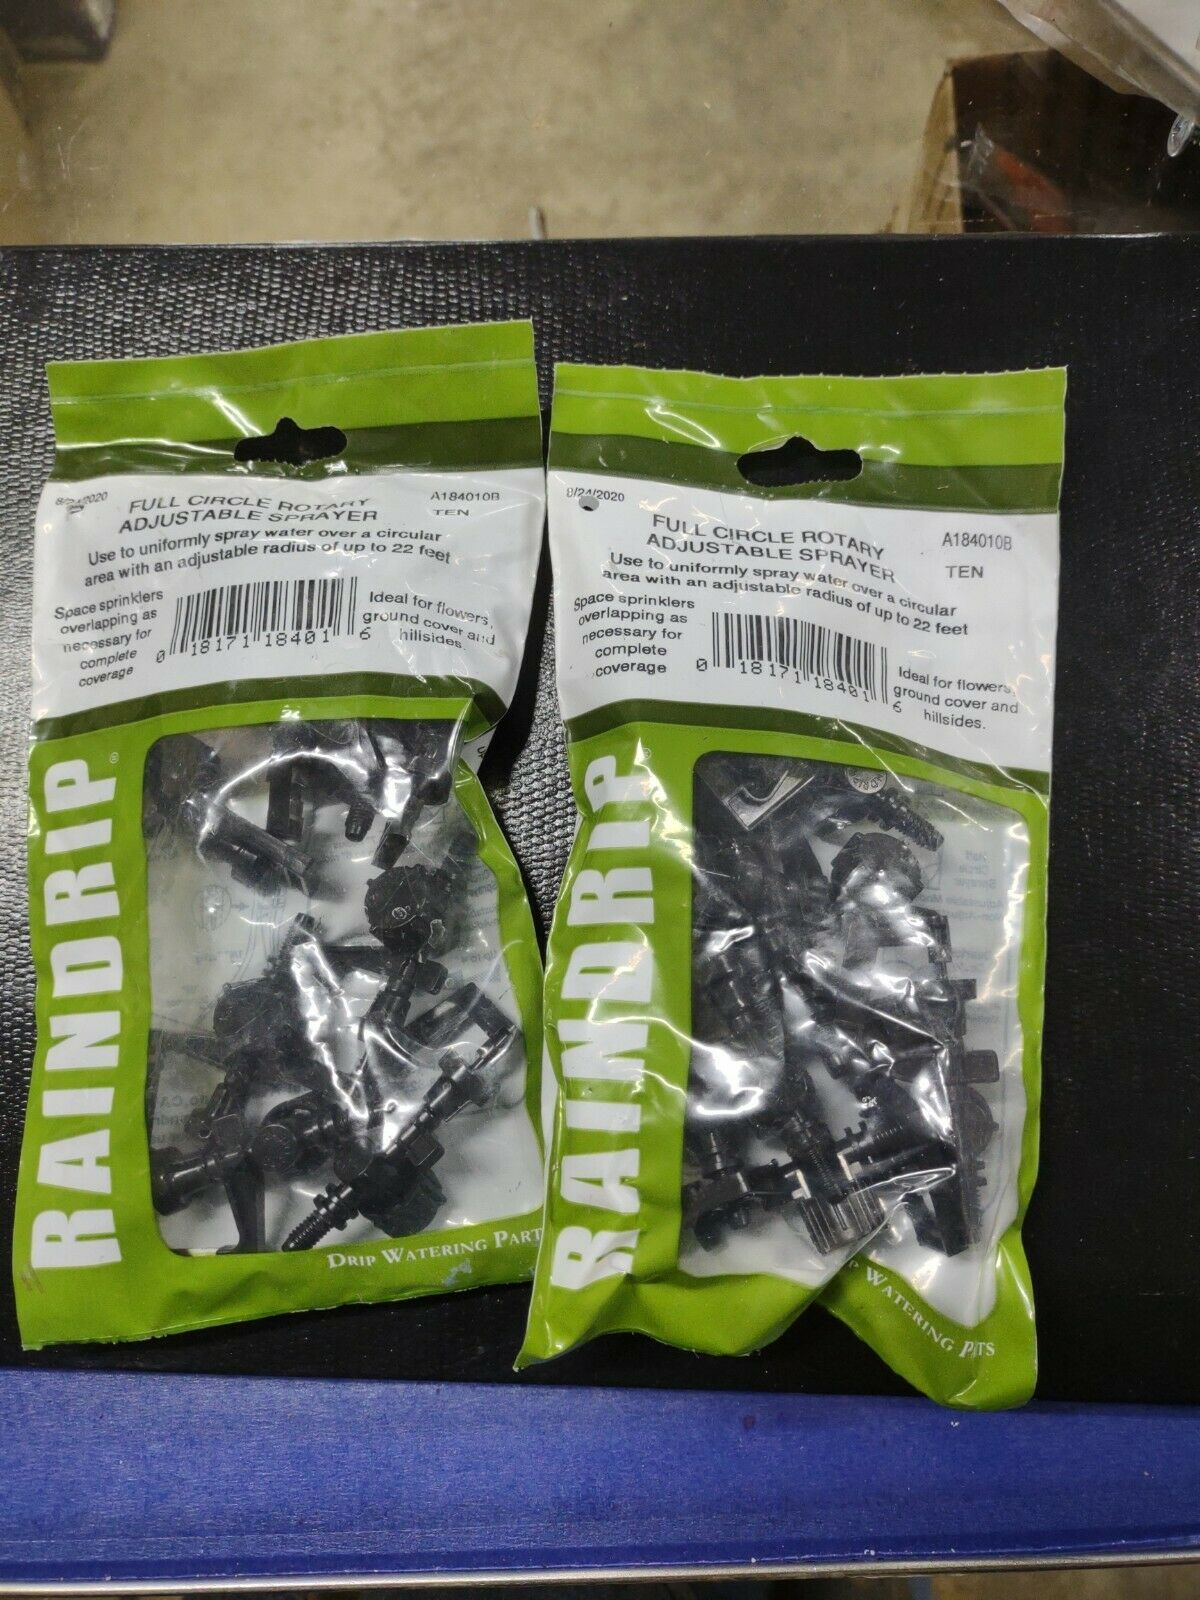 Lot of 20 RainDrip A184010B for Garden, Drip Irrigation, Flowers and Trees